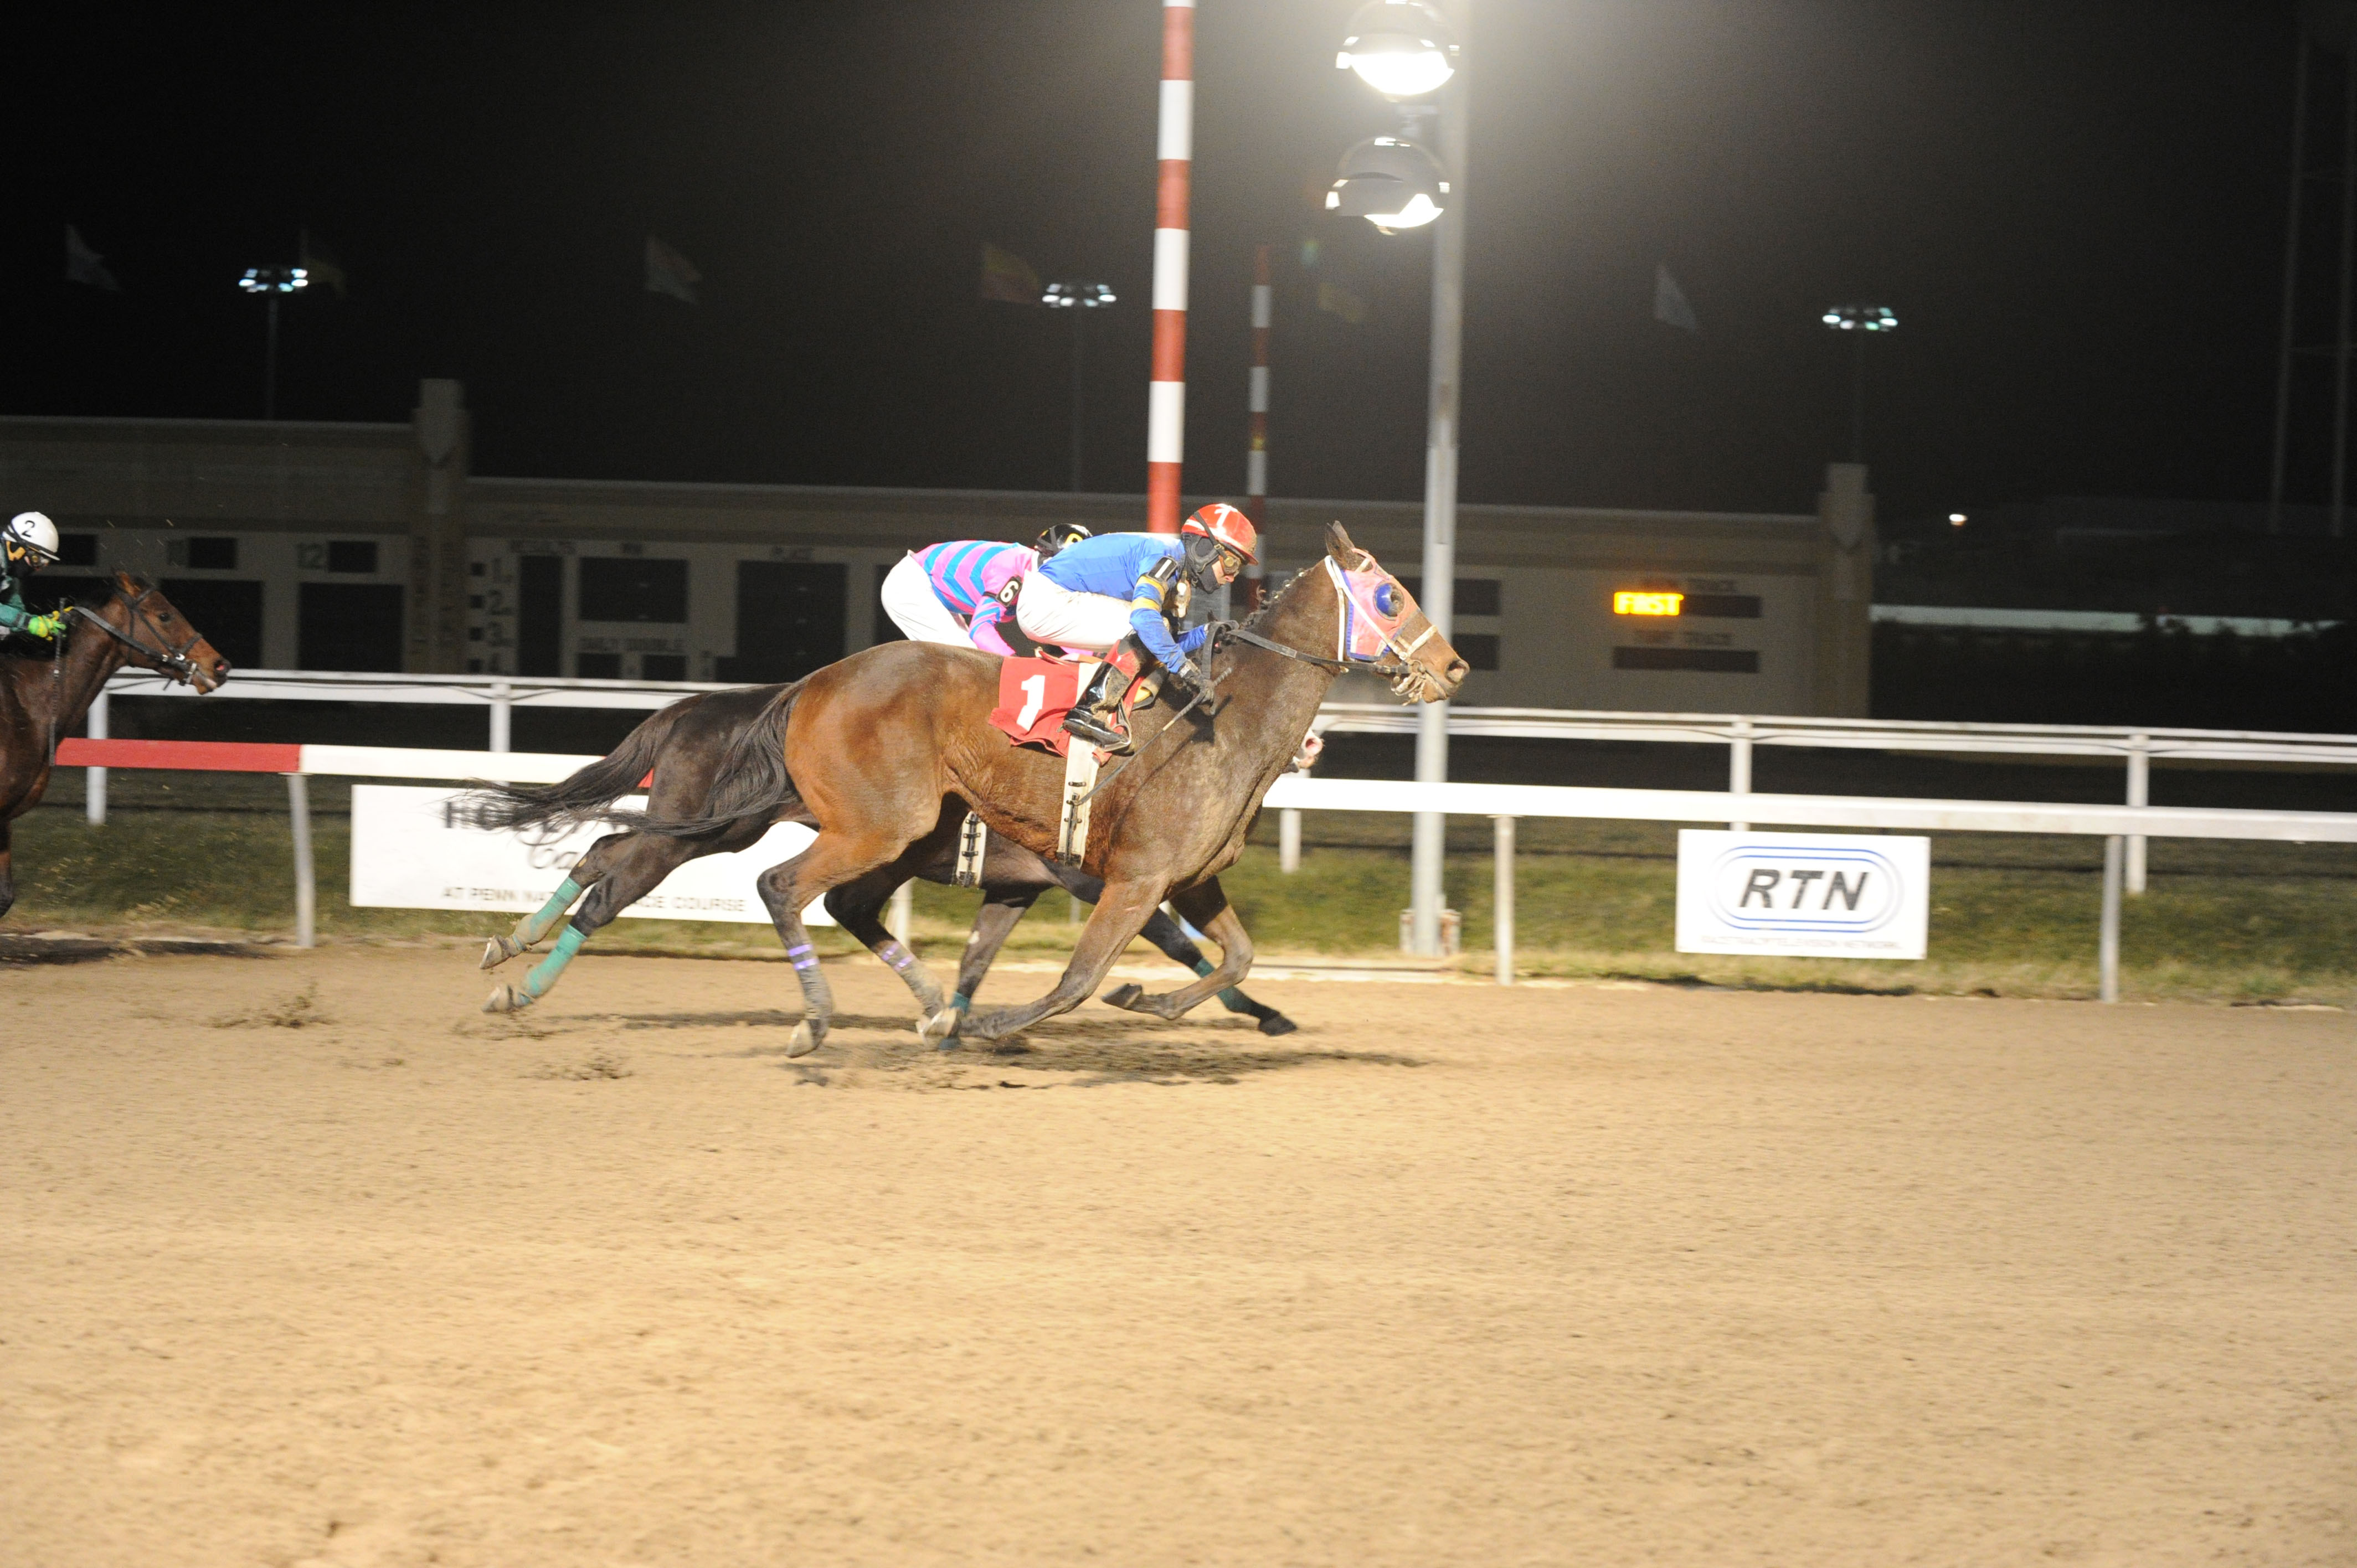 Morgan's Ford-bred No Free Lunch winning an allowance at Penn National on 11/28. Photo courtesy BND Photography.